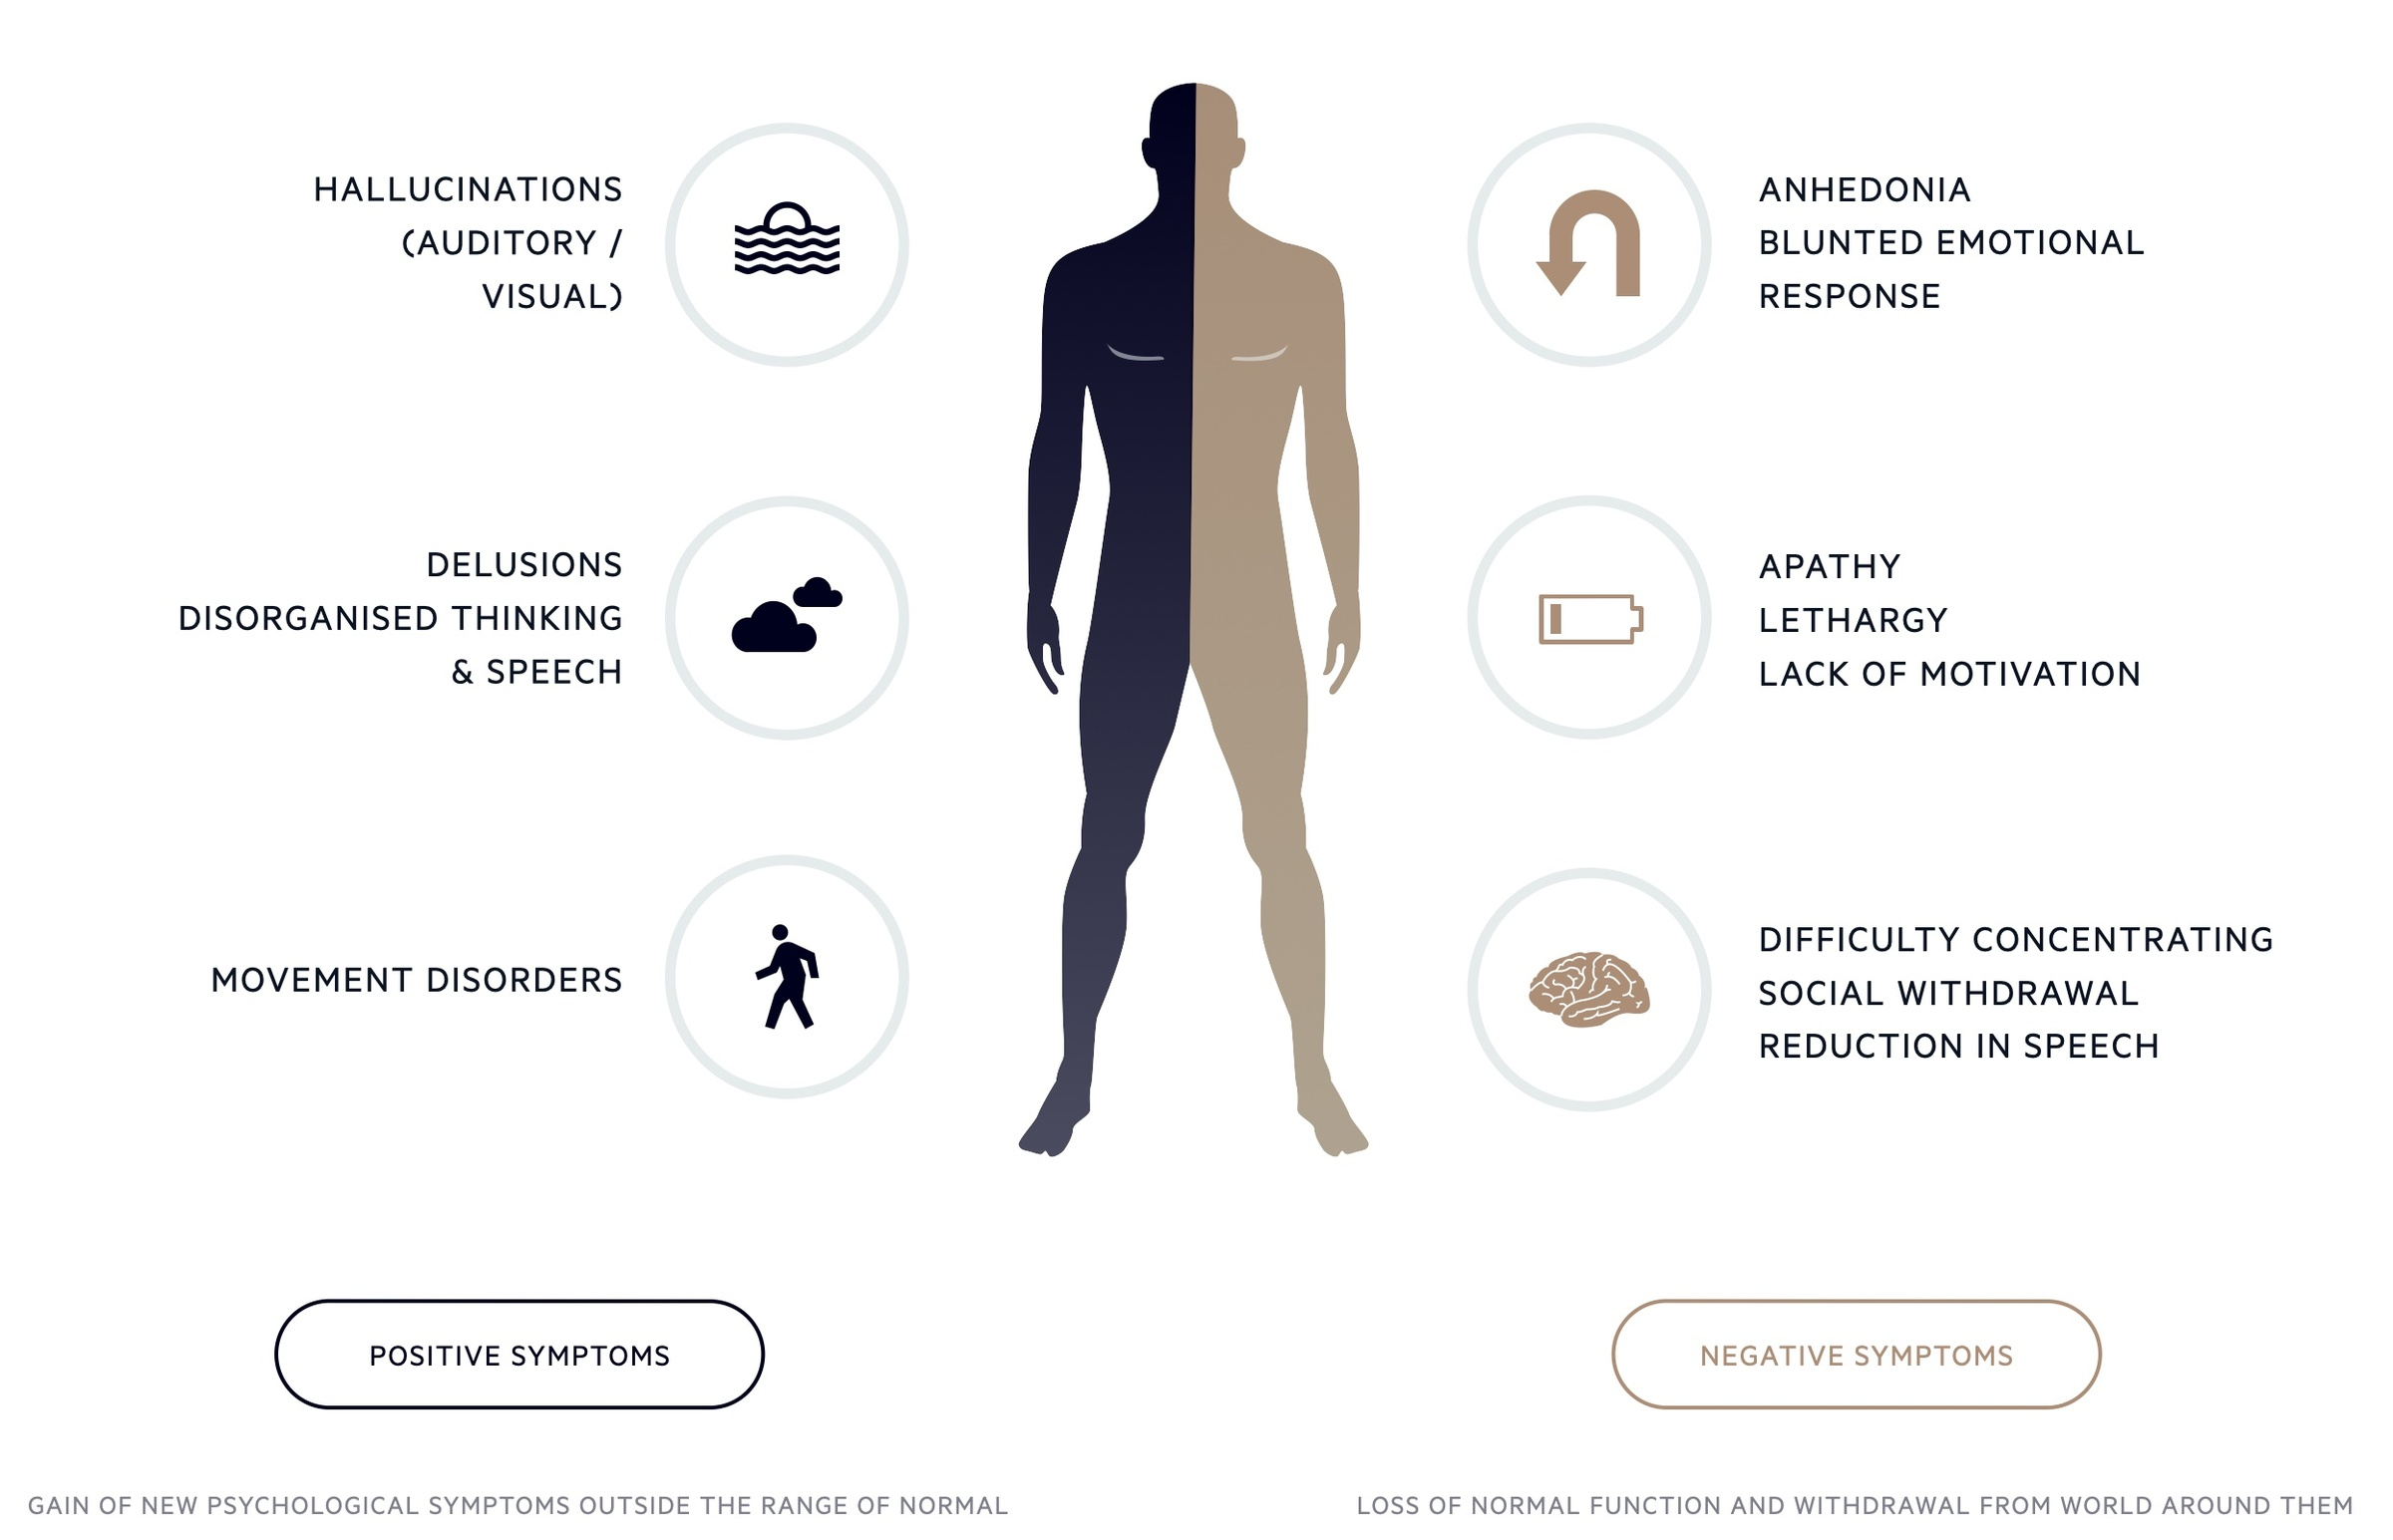 Clinical features of psychosis